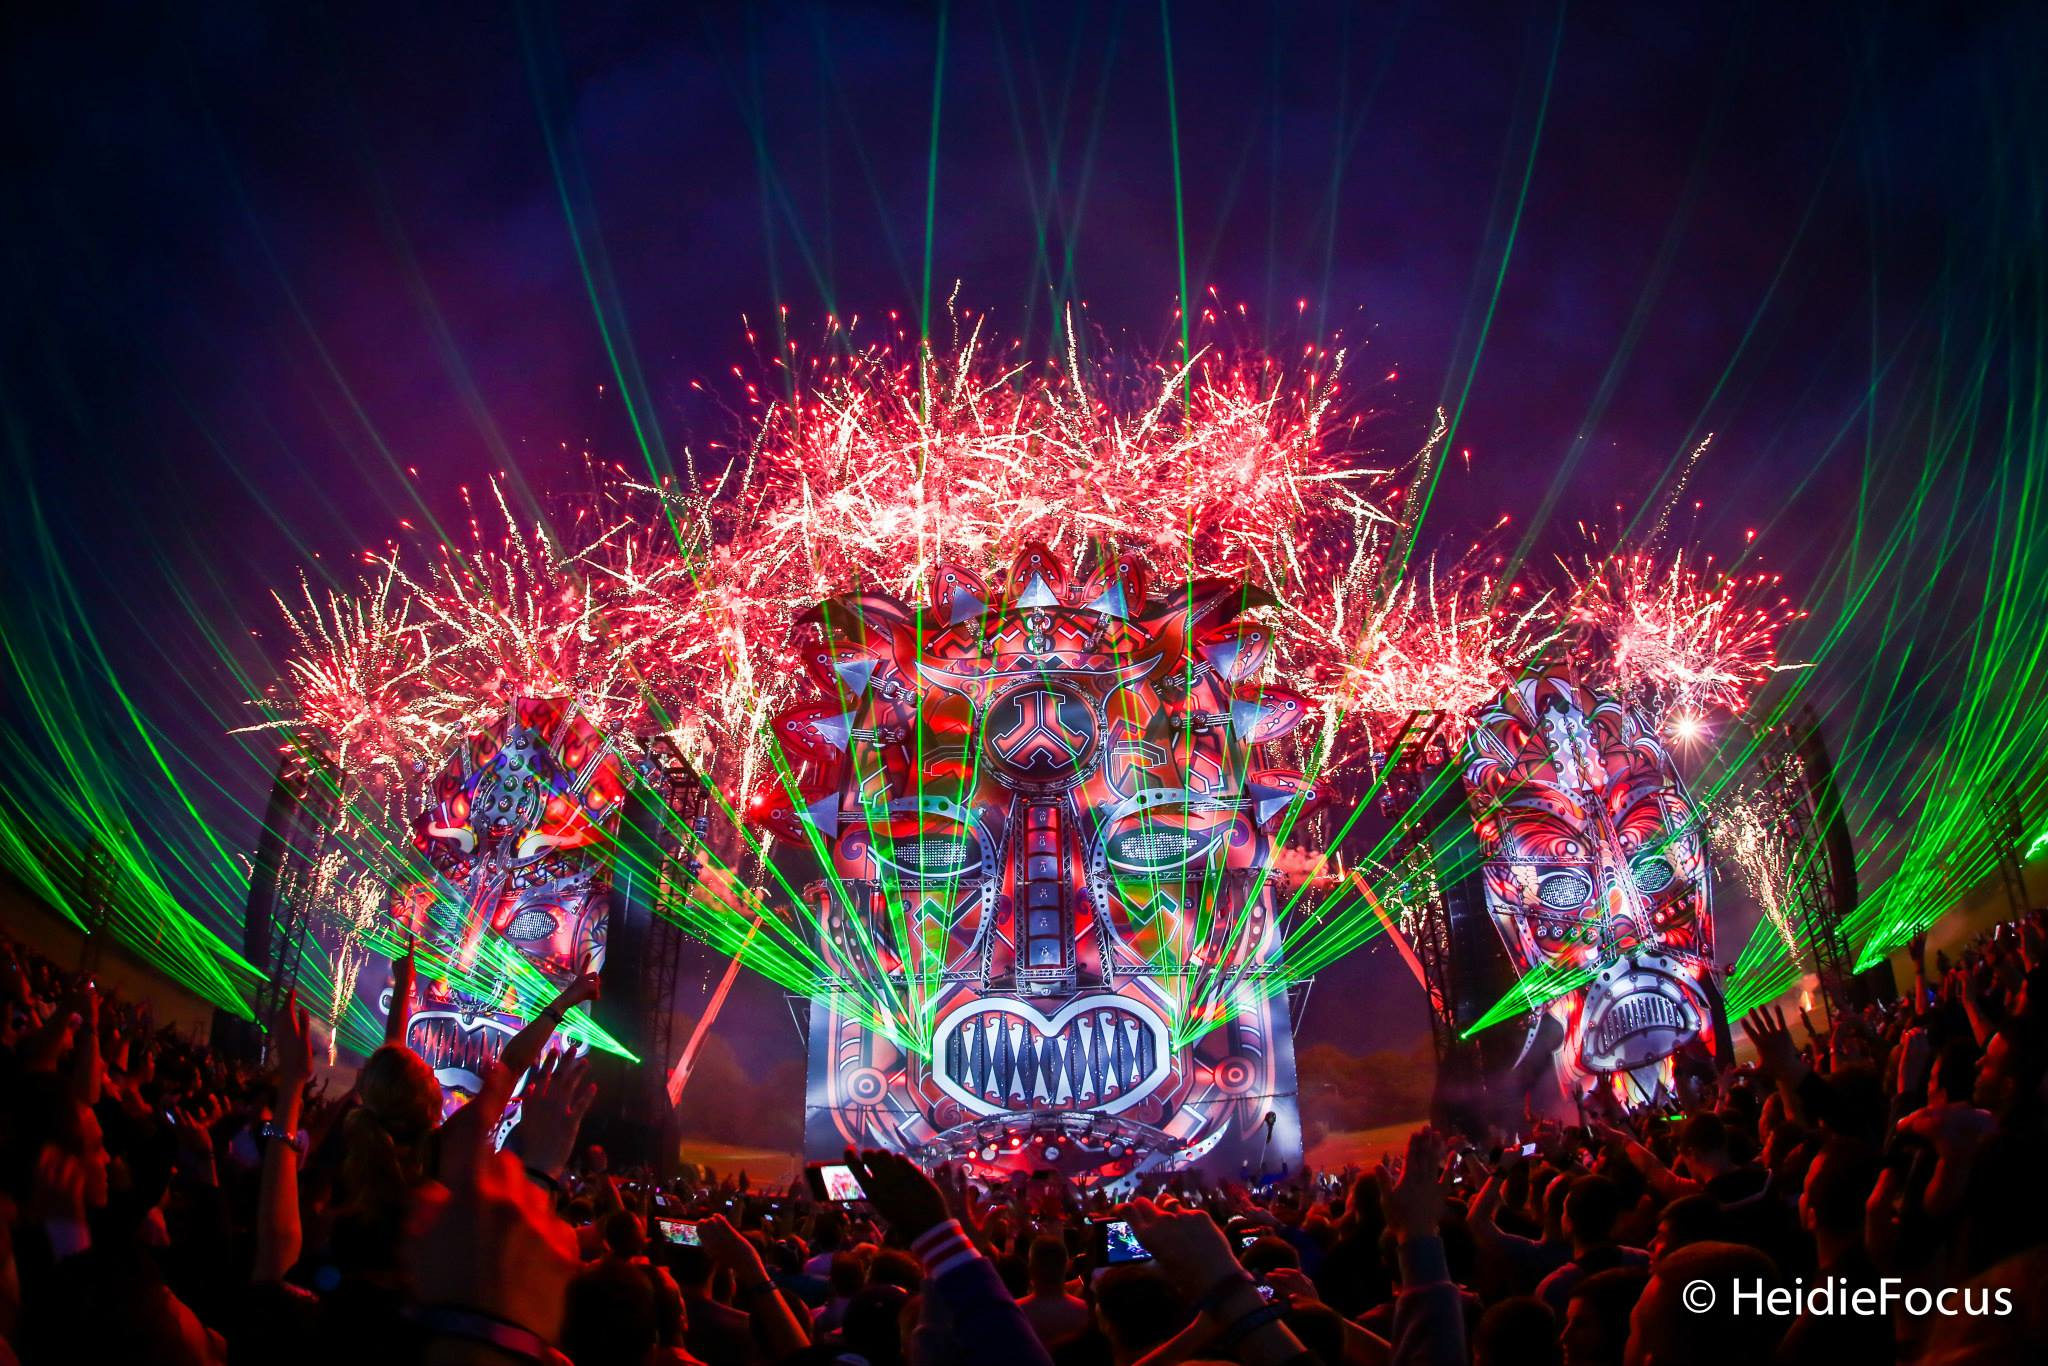 Eye candy 40 photos of beautiful EDM festival stage 2048x1366